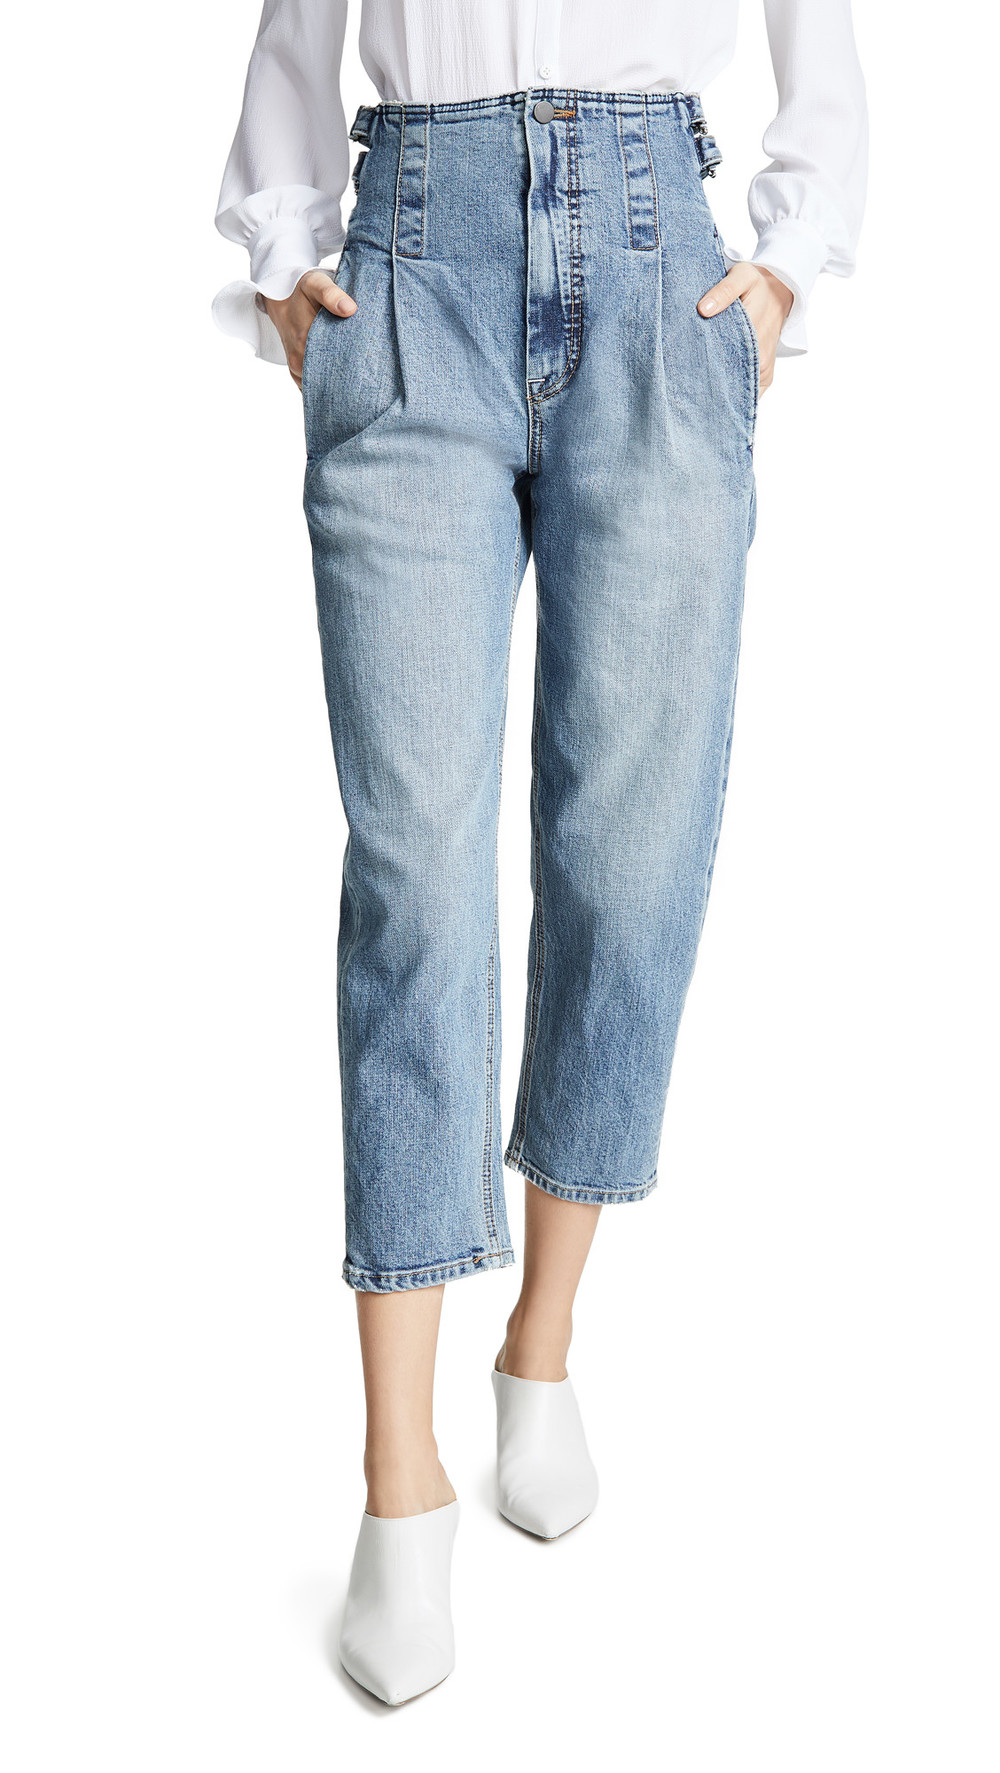 Colovos Vintage Buckle Pants in blue